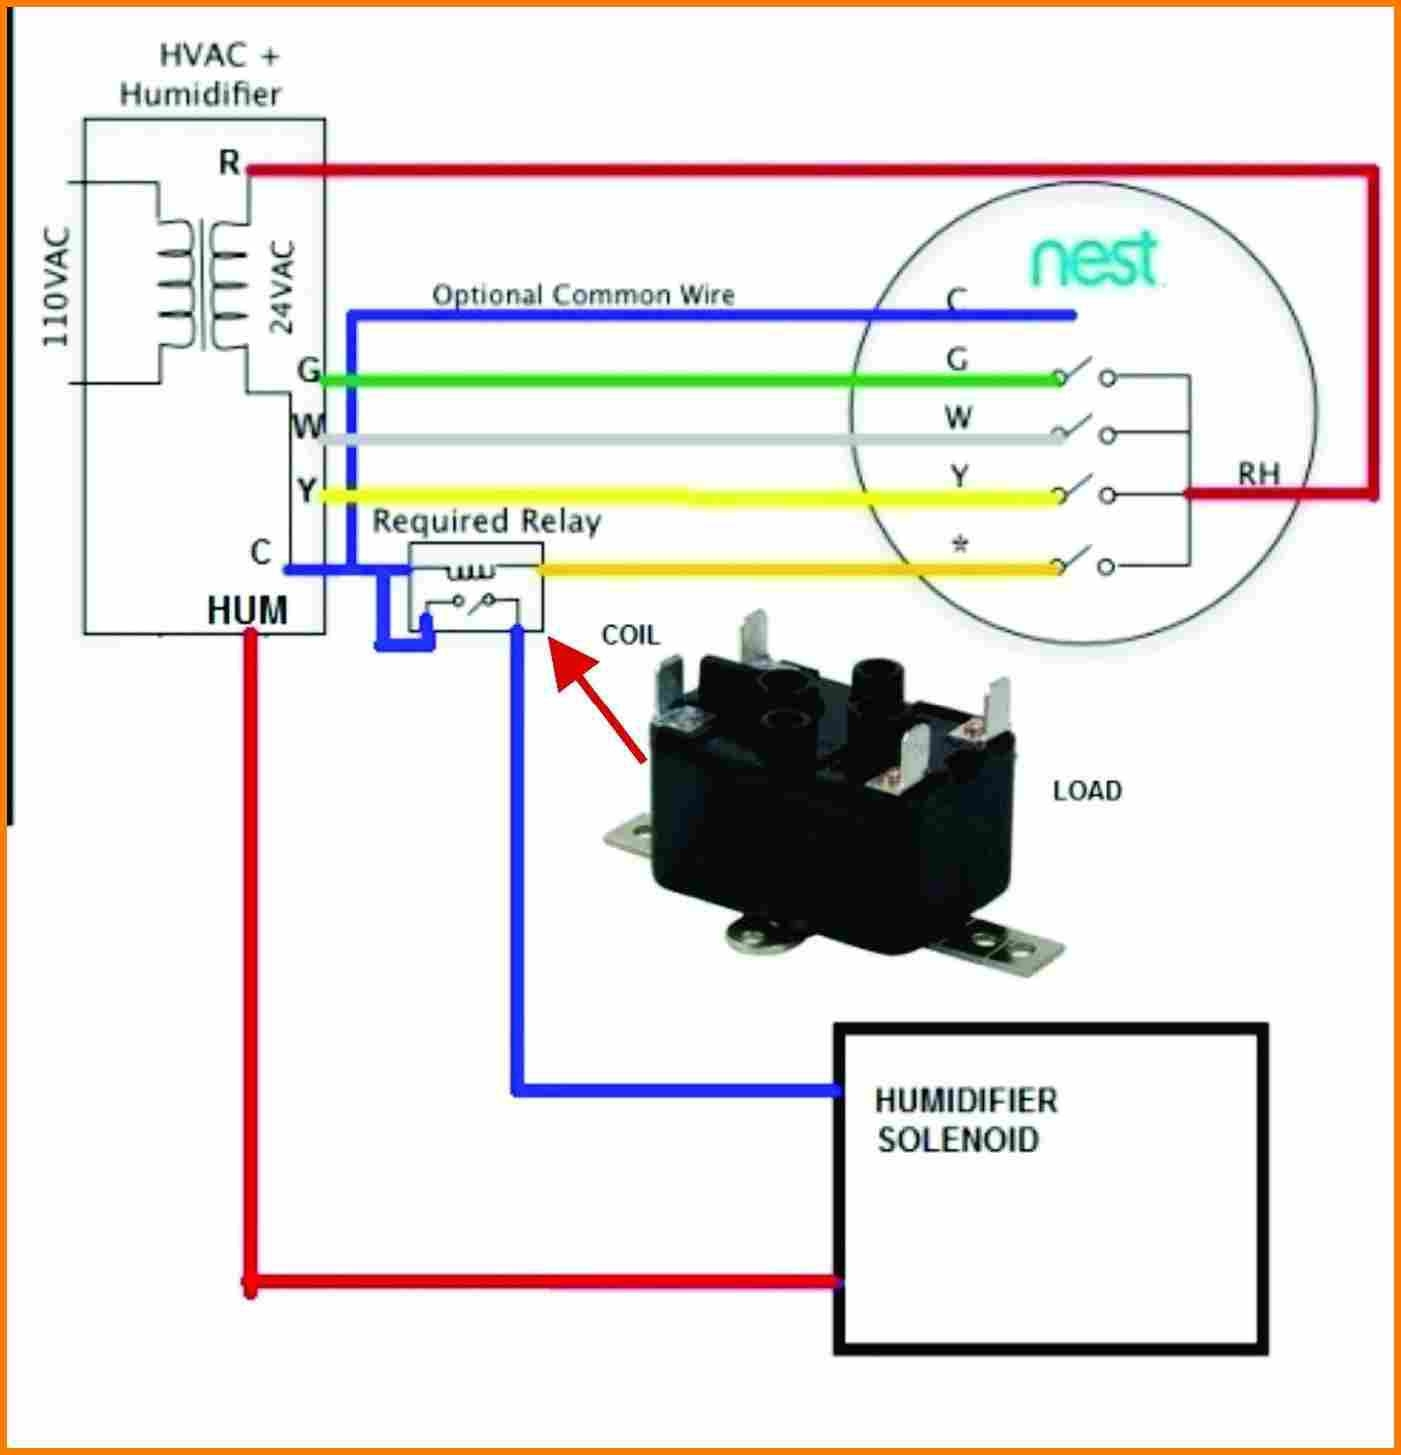 nest thermostat humidifier wiring diagram Download-Nest Wireless thermostat Wiring Diagram Refrence Nest thermostat Wiring Diagram Wellread 10-l